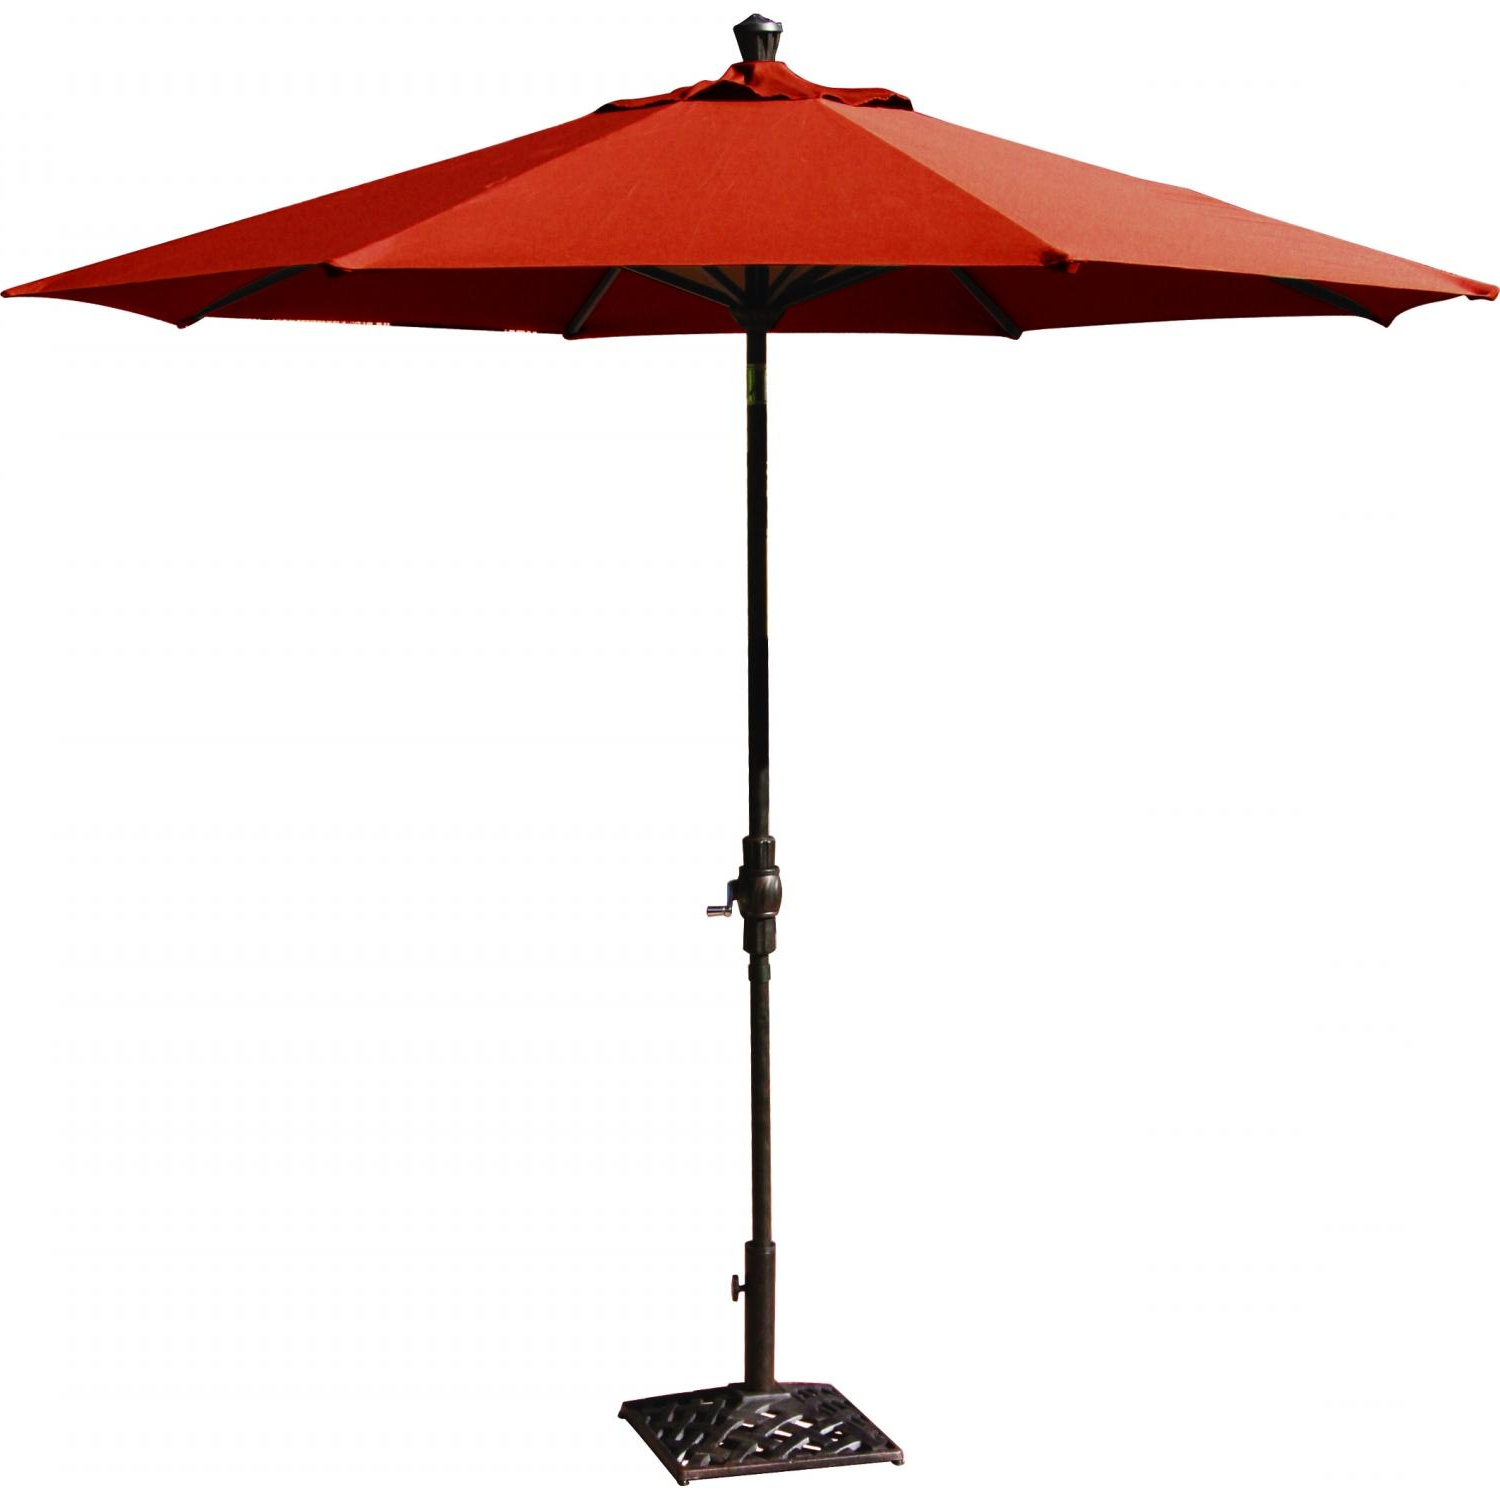 Solid Market Umbrellas Throughout Widely Used Market Umbrella Aluminum Frame 9' Autotilt Sunbrella Standard Solid (more Colors) (View 11 of 20)